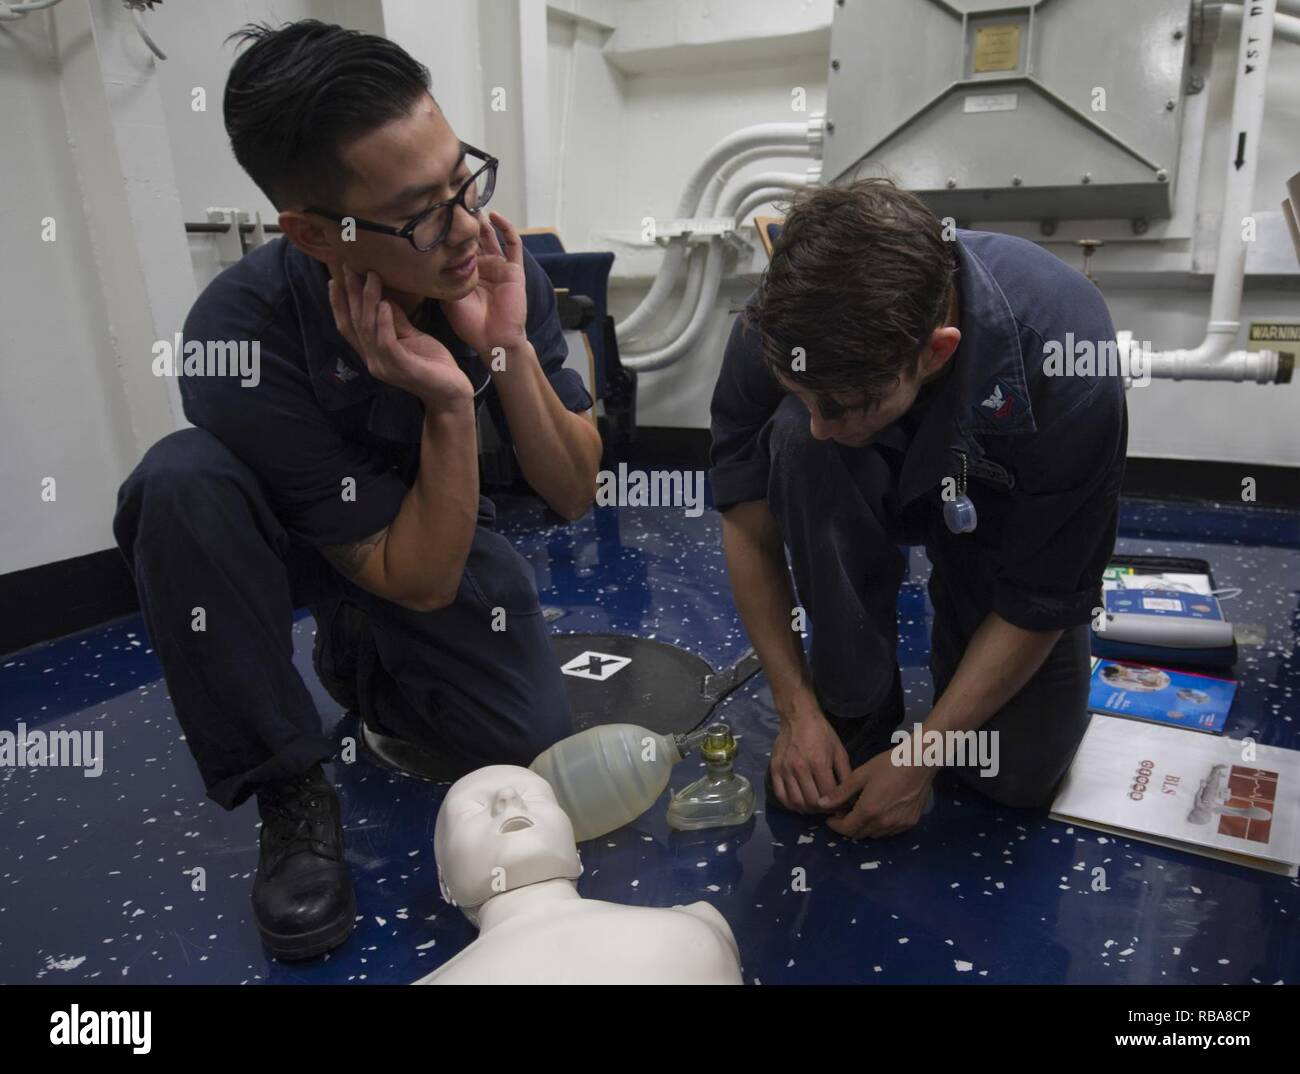 SOUTH CHINA SEA (Jan. 2, 2017) Hospital Corpsman 3rd Class Justin A. Lam, left, teaches Fire Controlman 2nd Class Christopher M. Conley how to perform cardio-pulmonary resuscitation (CPR) during a CPR certification class aboard the Arleigh Burke-class guided-missile destroyer USS John S. McCain (DDG 56). The ship is on patrol in the South China Sea supporting security and stability in the Indo-Asia-Pacific region. - Stock Image